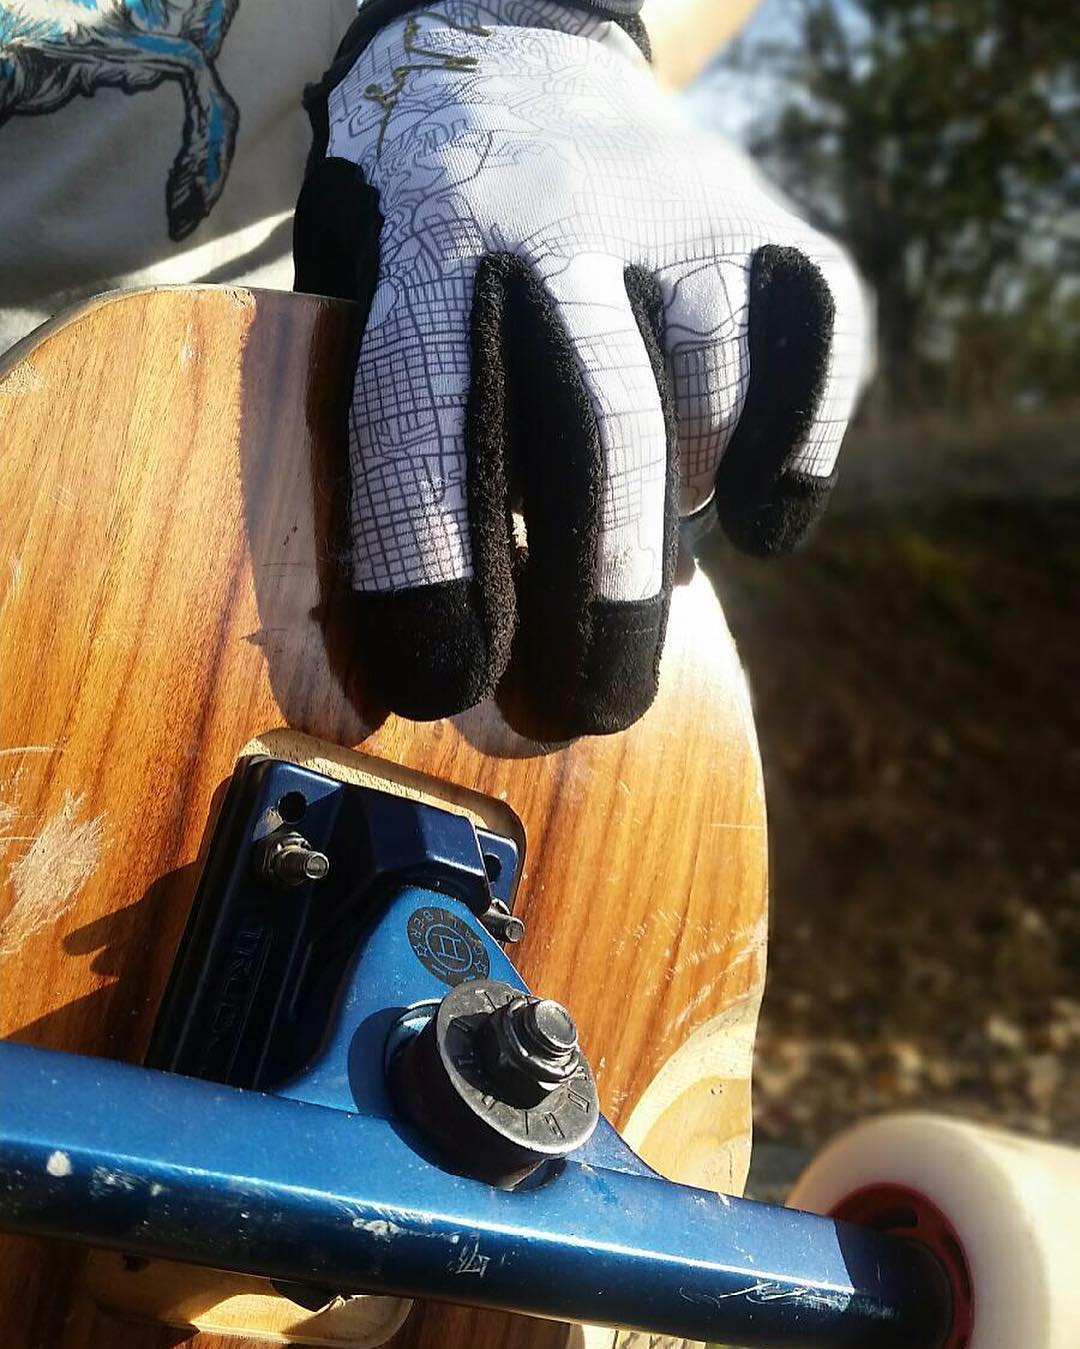 @fillbackside knows that #midnightsatin Caliber trucks and @skatebloodorange @liam_lbdr_ pro gloves go well together